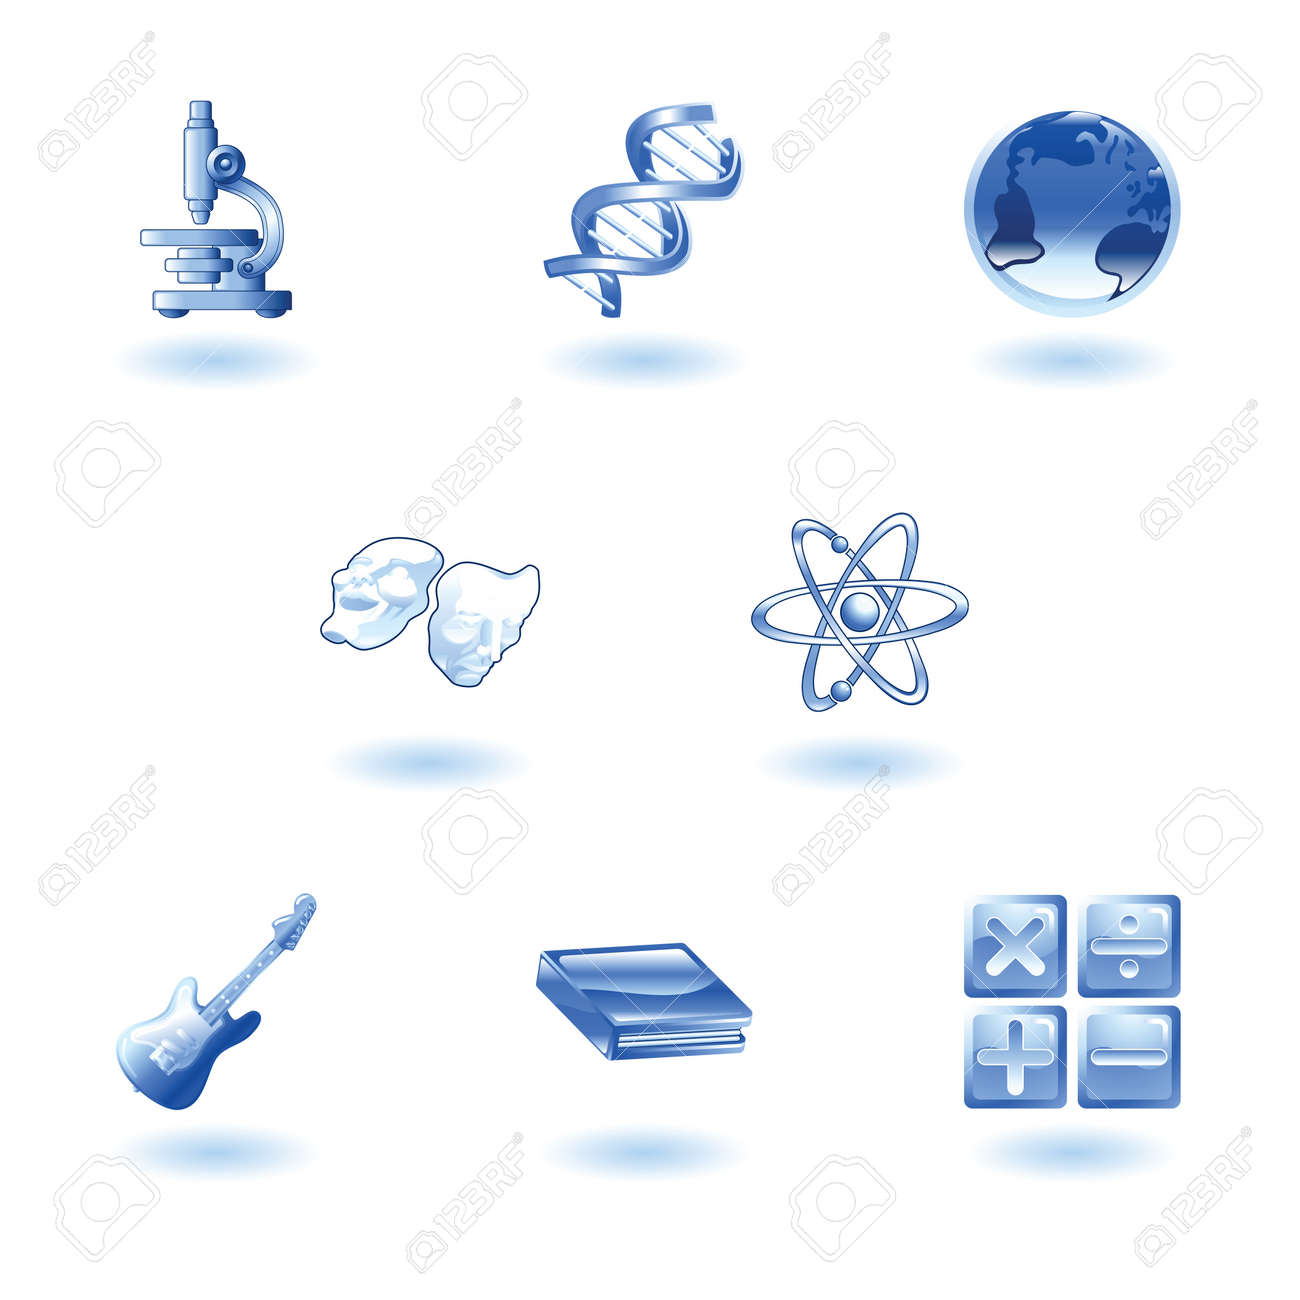 a subject or category icon set eg. science, maths, literature, geography, music, physics etc Stock Vector - 4814158